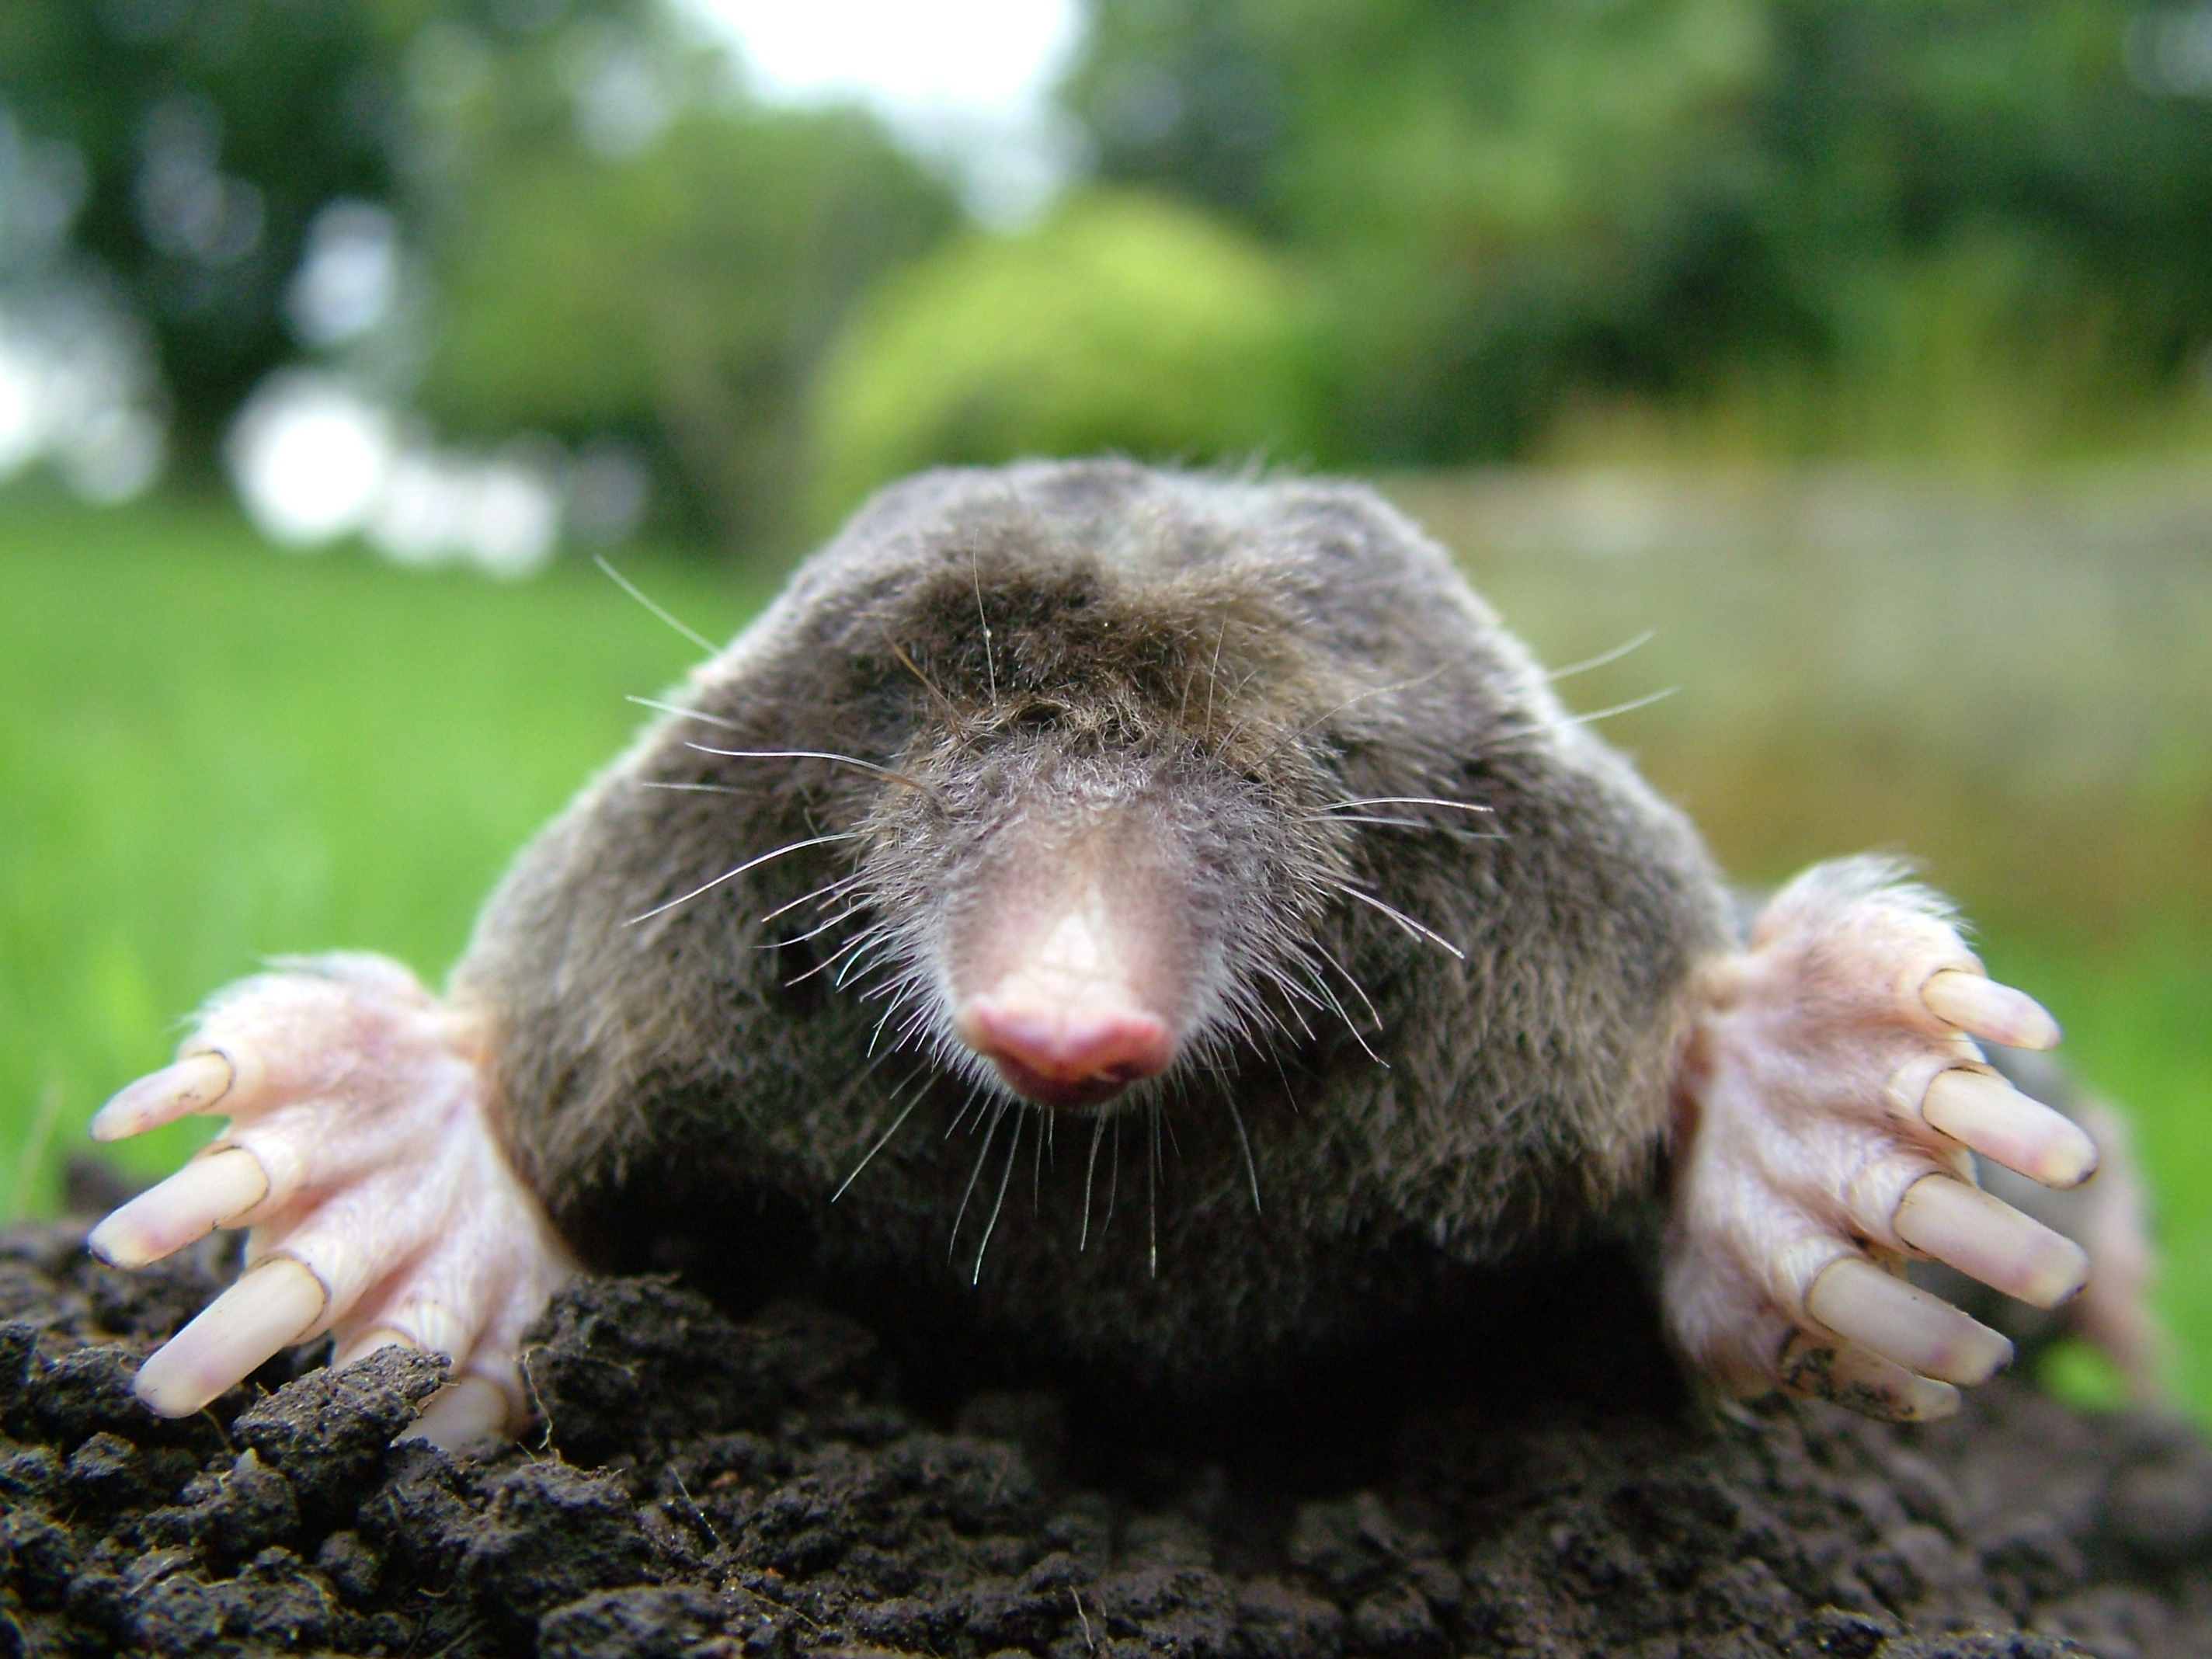 Is this what a mole looks like? [Image from Wikipedia]